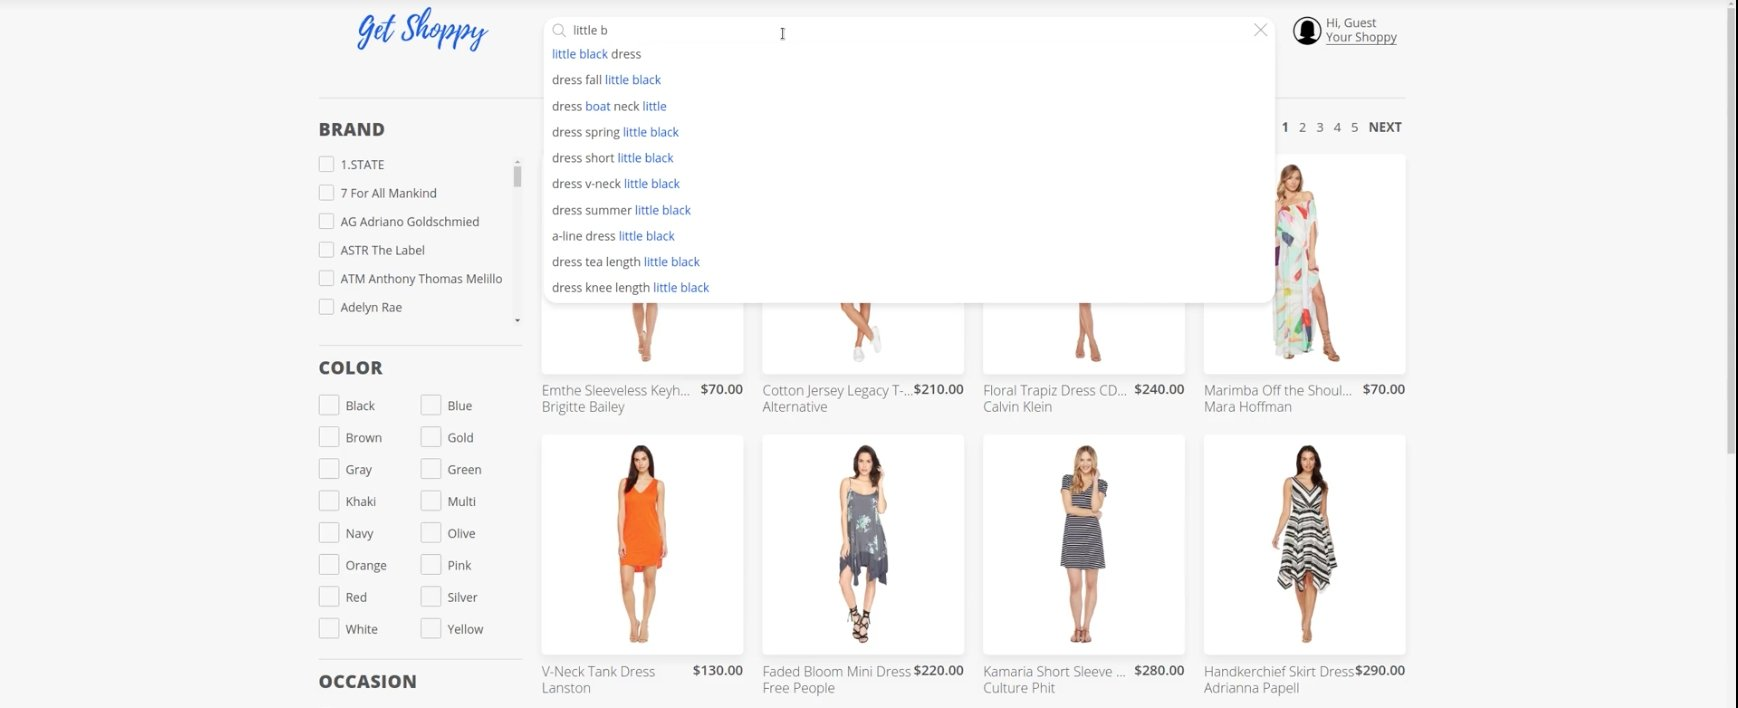 How to implement autocomplete search for large-scale e-commerce catalogs